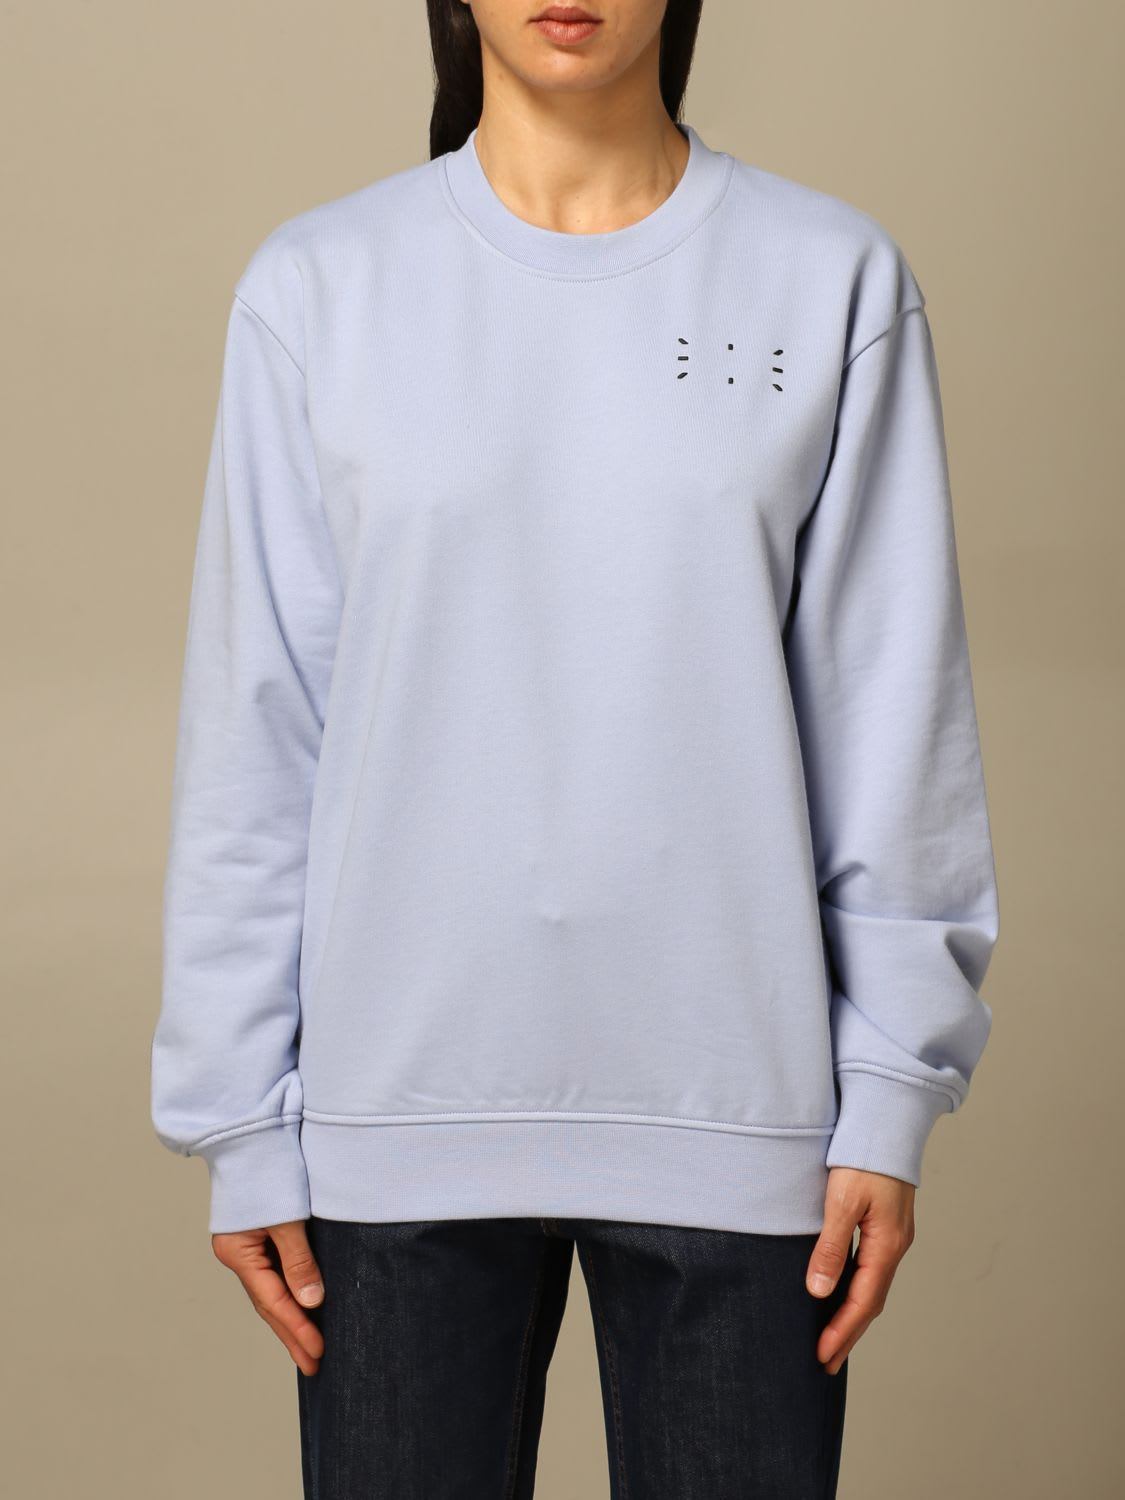 Mcq By Alexander Mcqueen MCQ SWEATER IC-0 BY MCQ CREWNECK SWEATSHIRT IN COTTON WITH LOGO